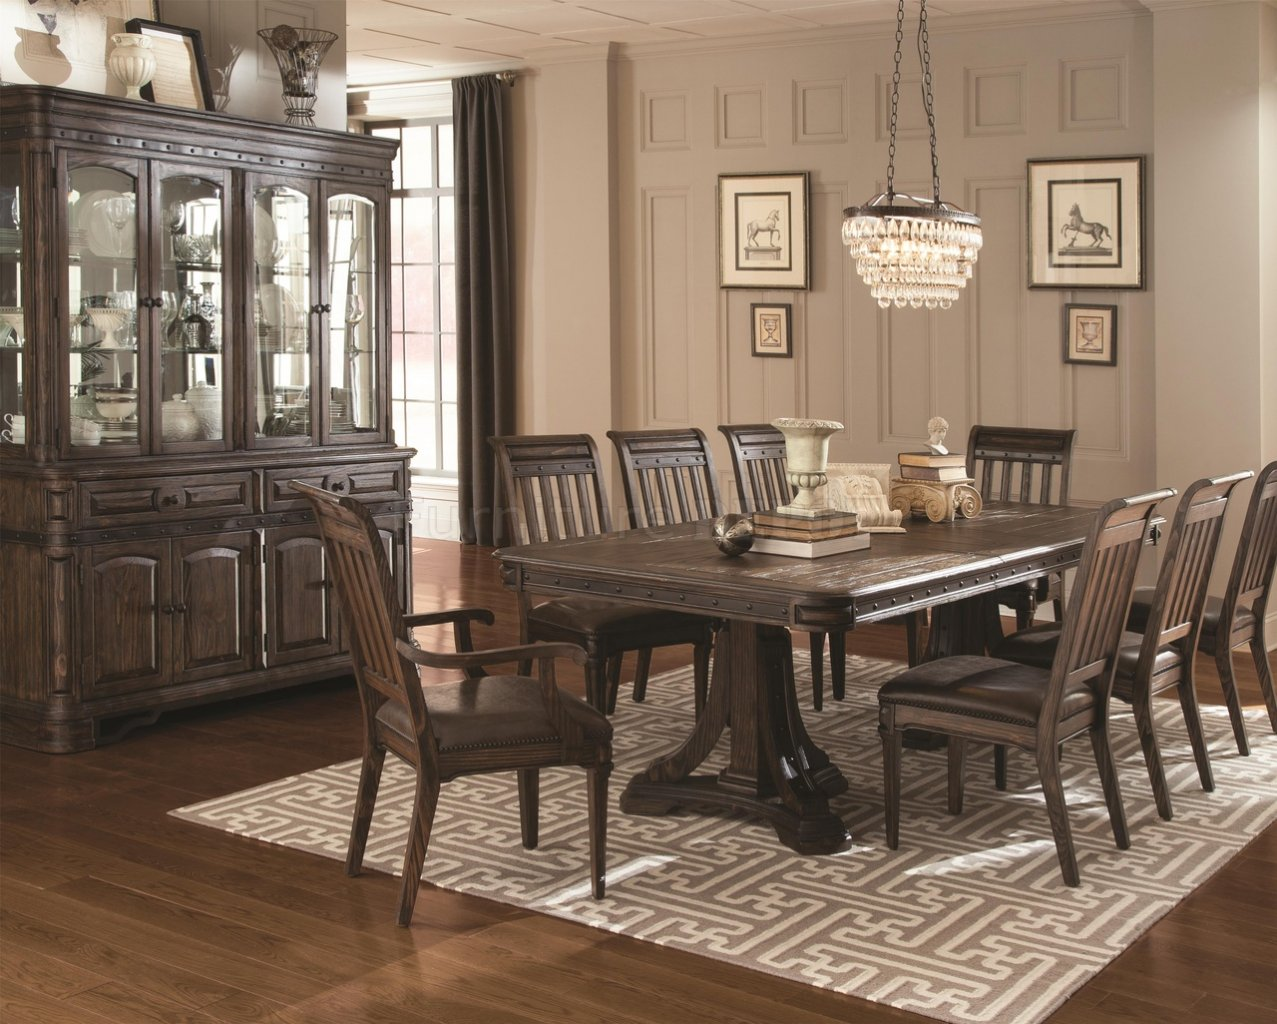 Fall Trend: Rustic Dining Table and Chair Sets - www ...